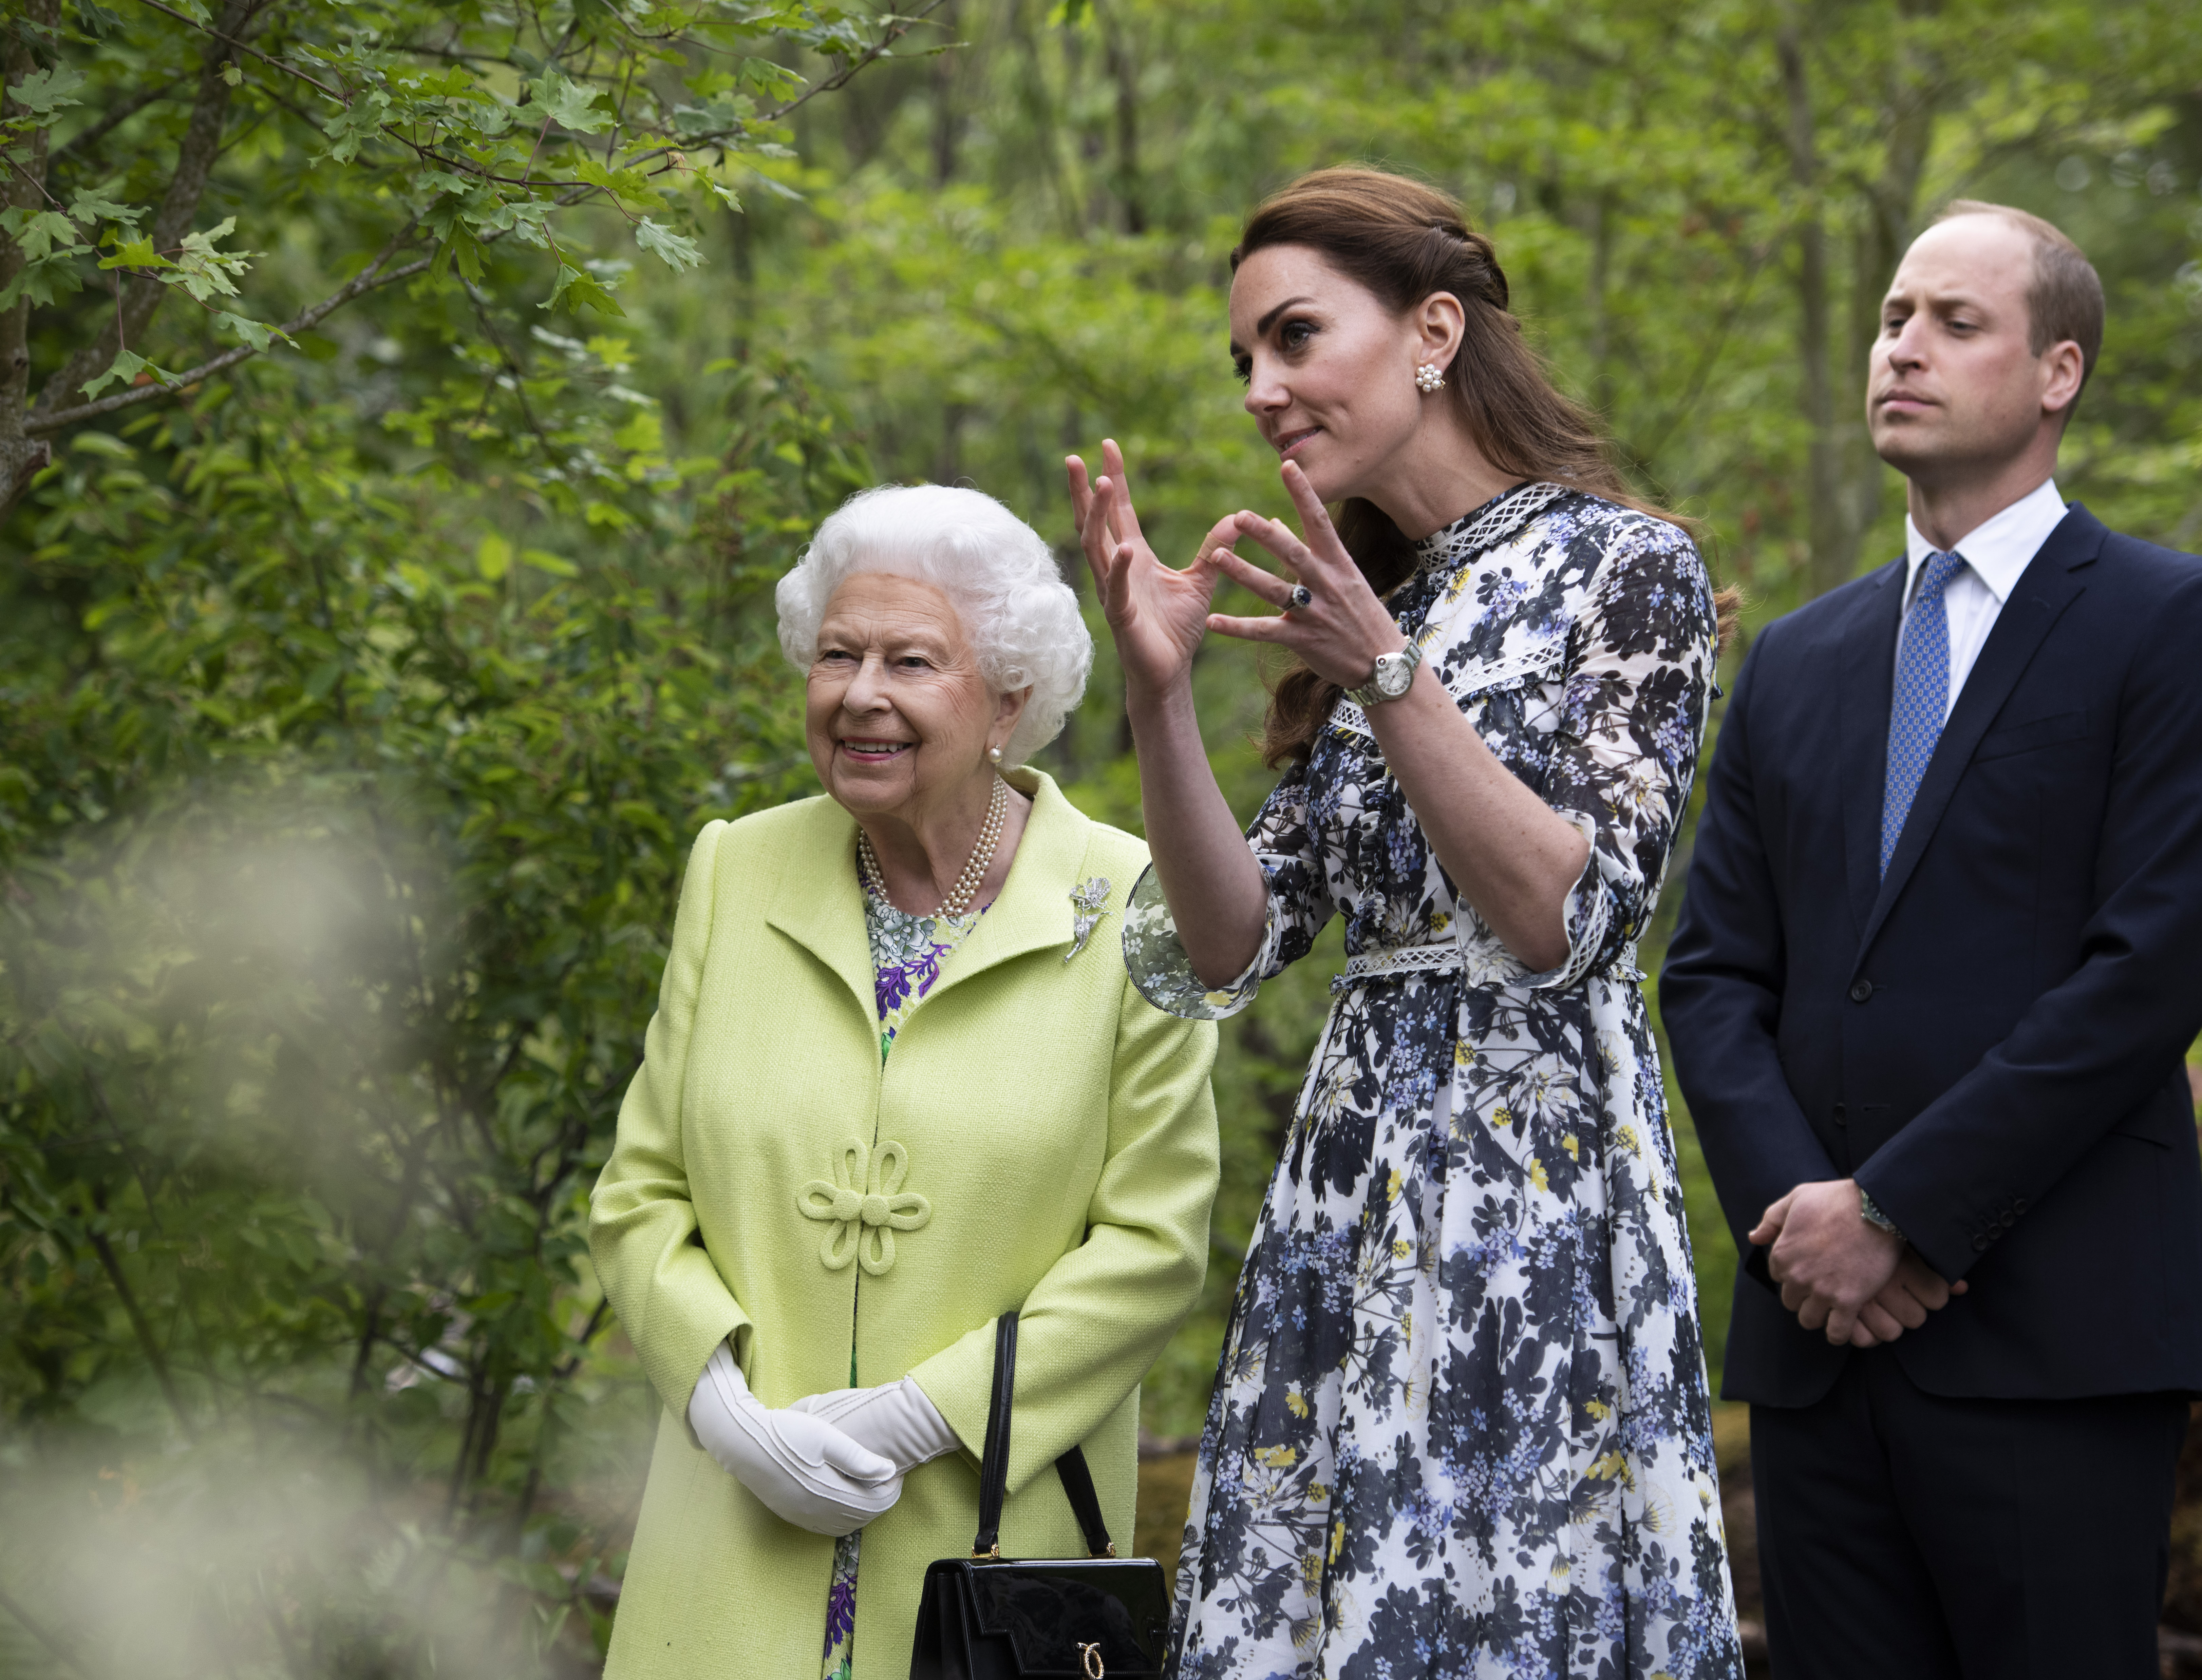 Kate shows the Queen and William around her Chelsea Flower Show garden in May. [Photo: PA]